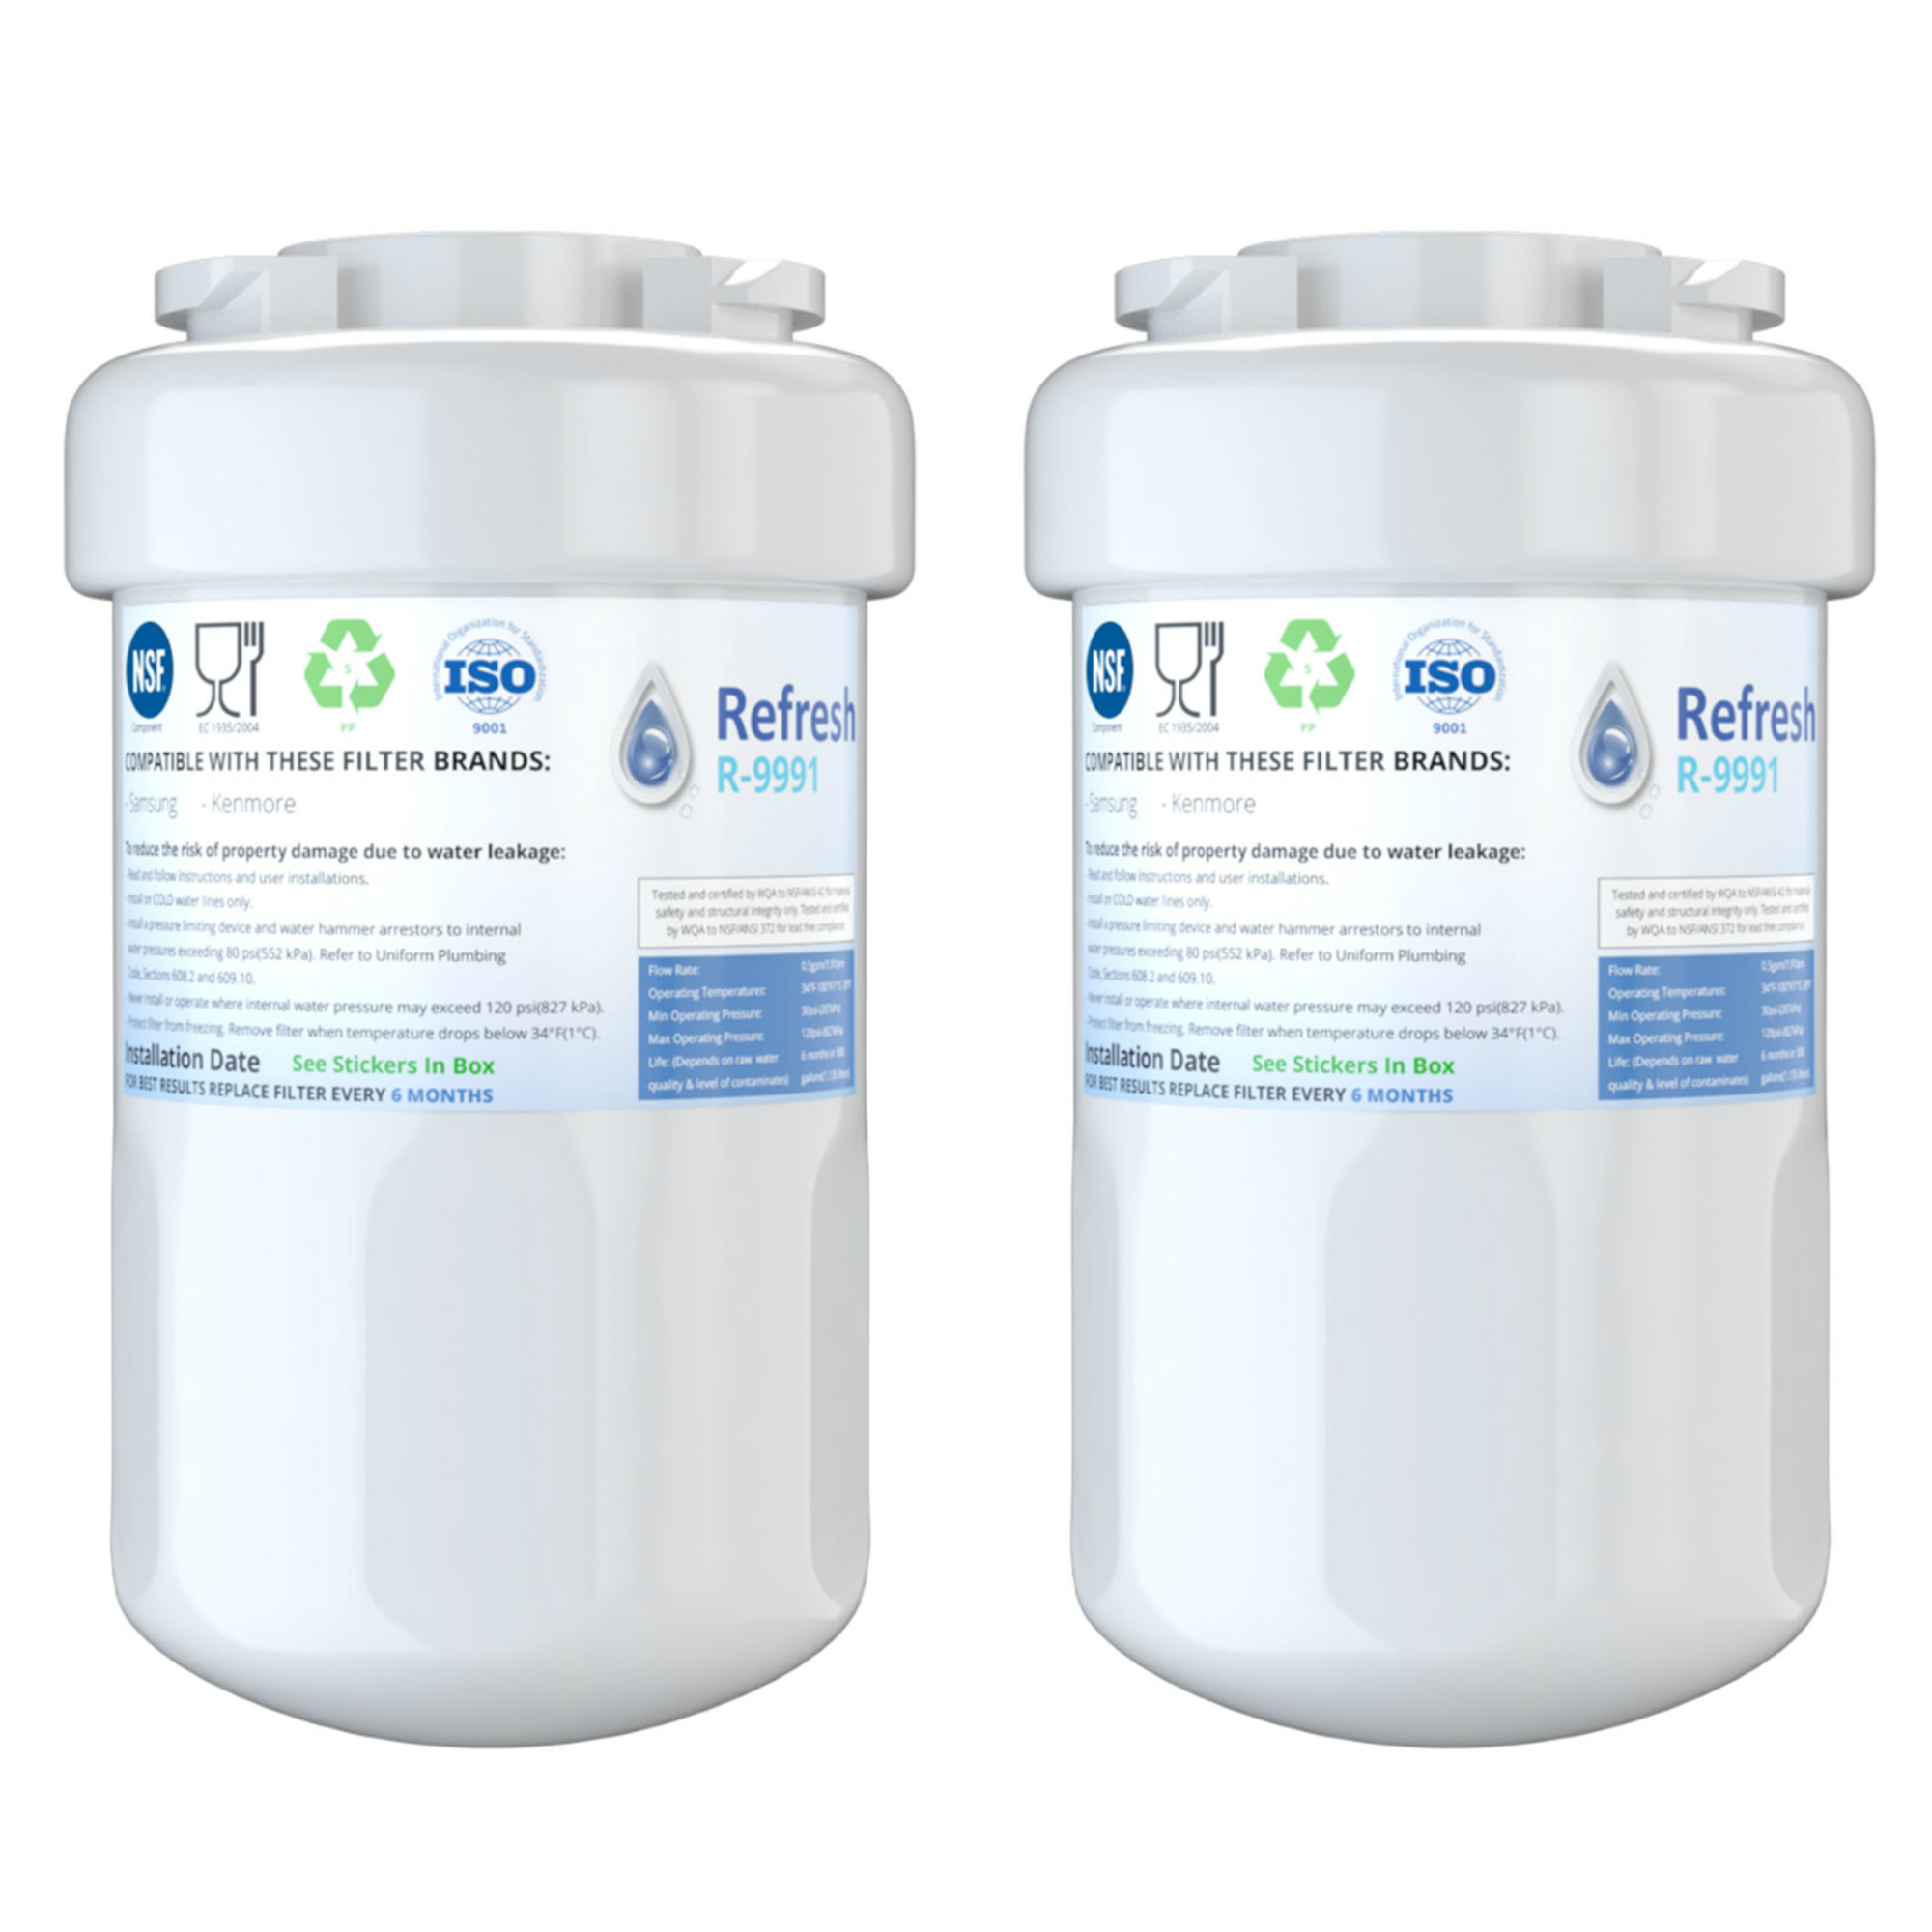 Details about Refresh Replacement Water Filter - Fits GE GSHS3KGZBCSS  Refrigerators (2 Pack)